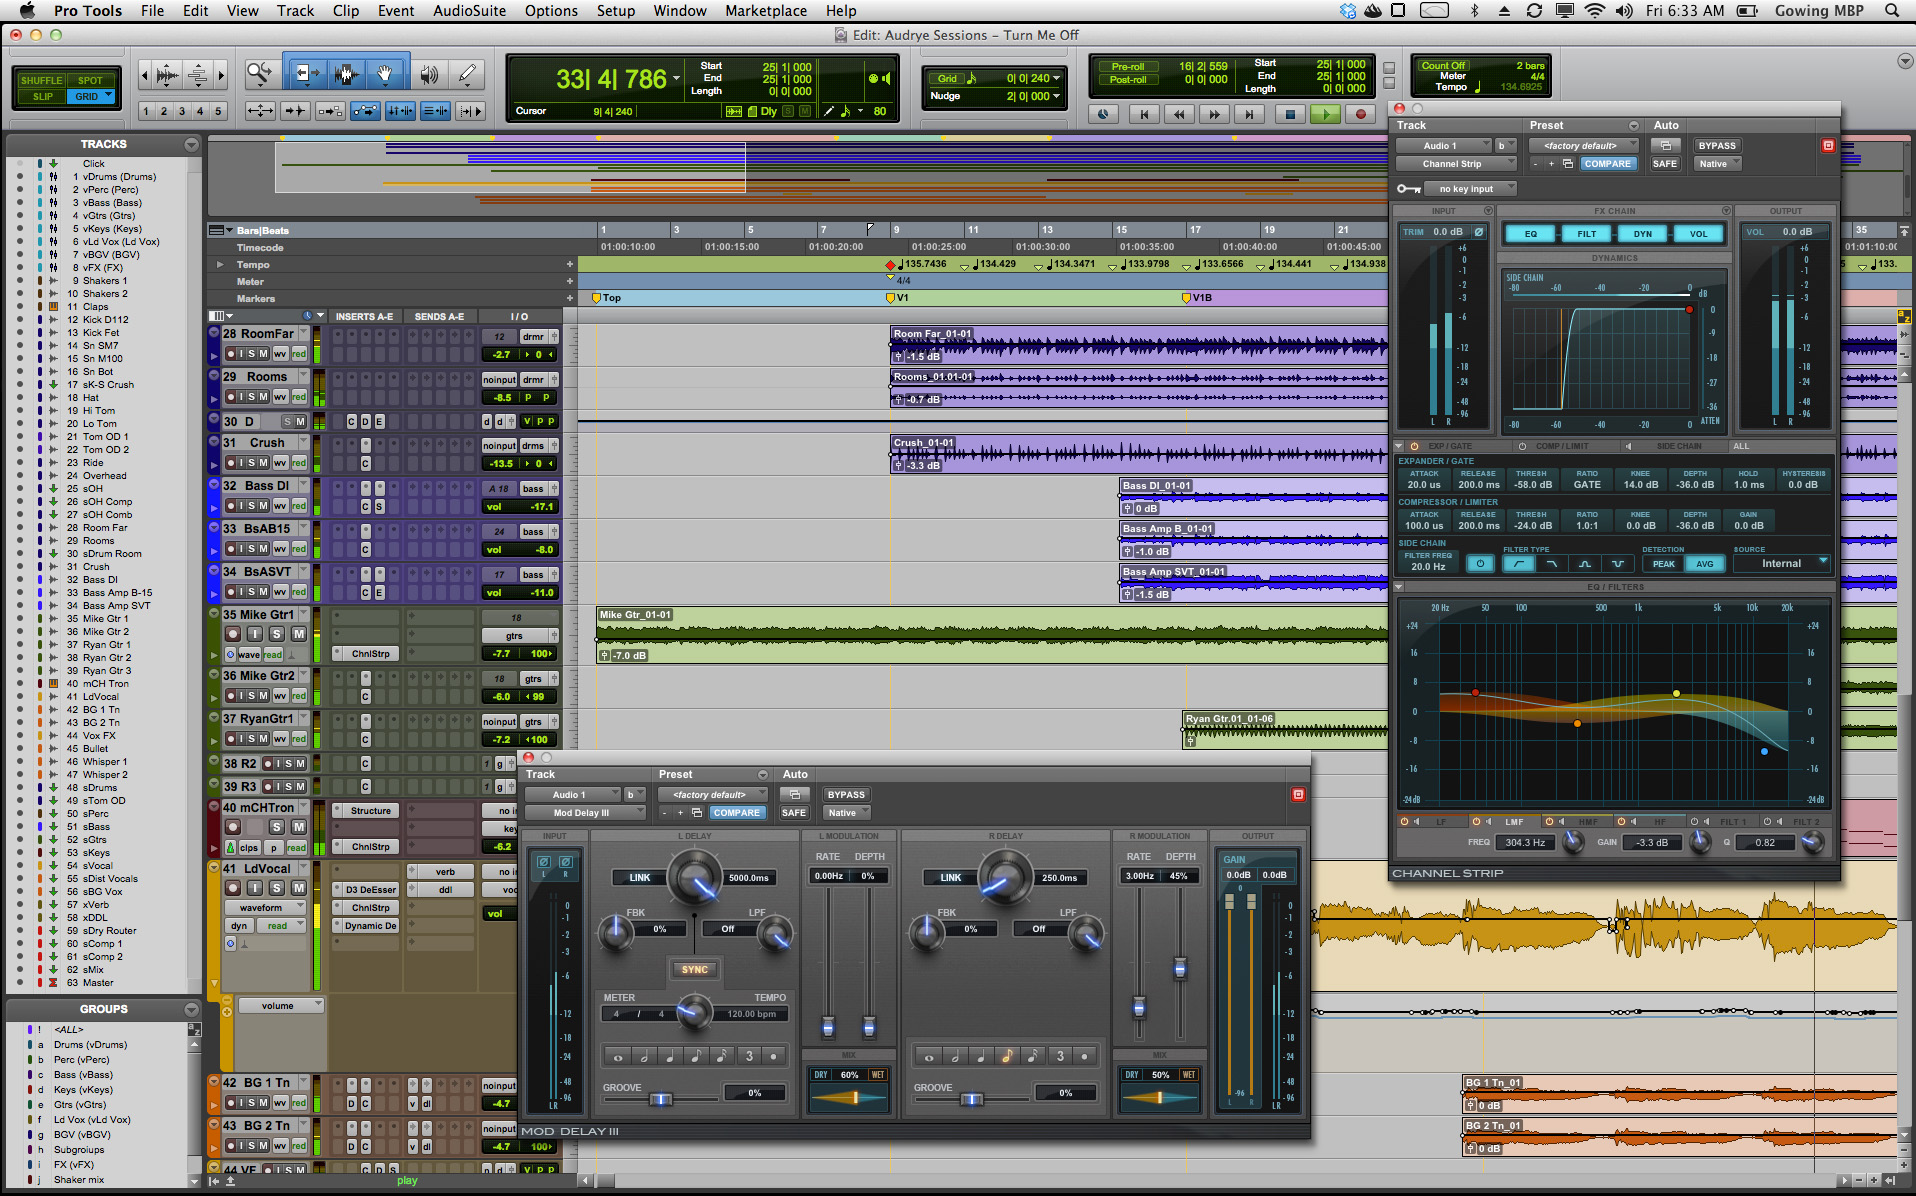 Pro Tools interface